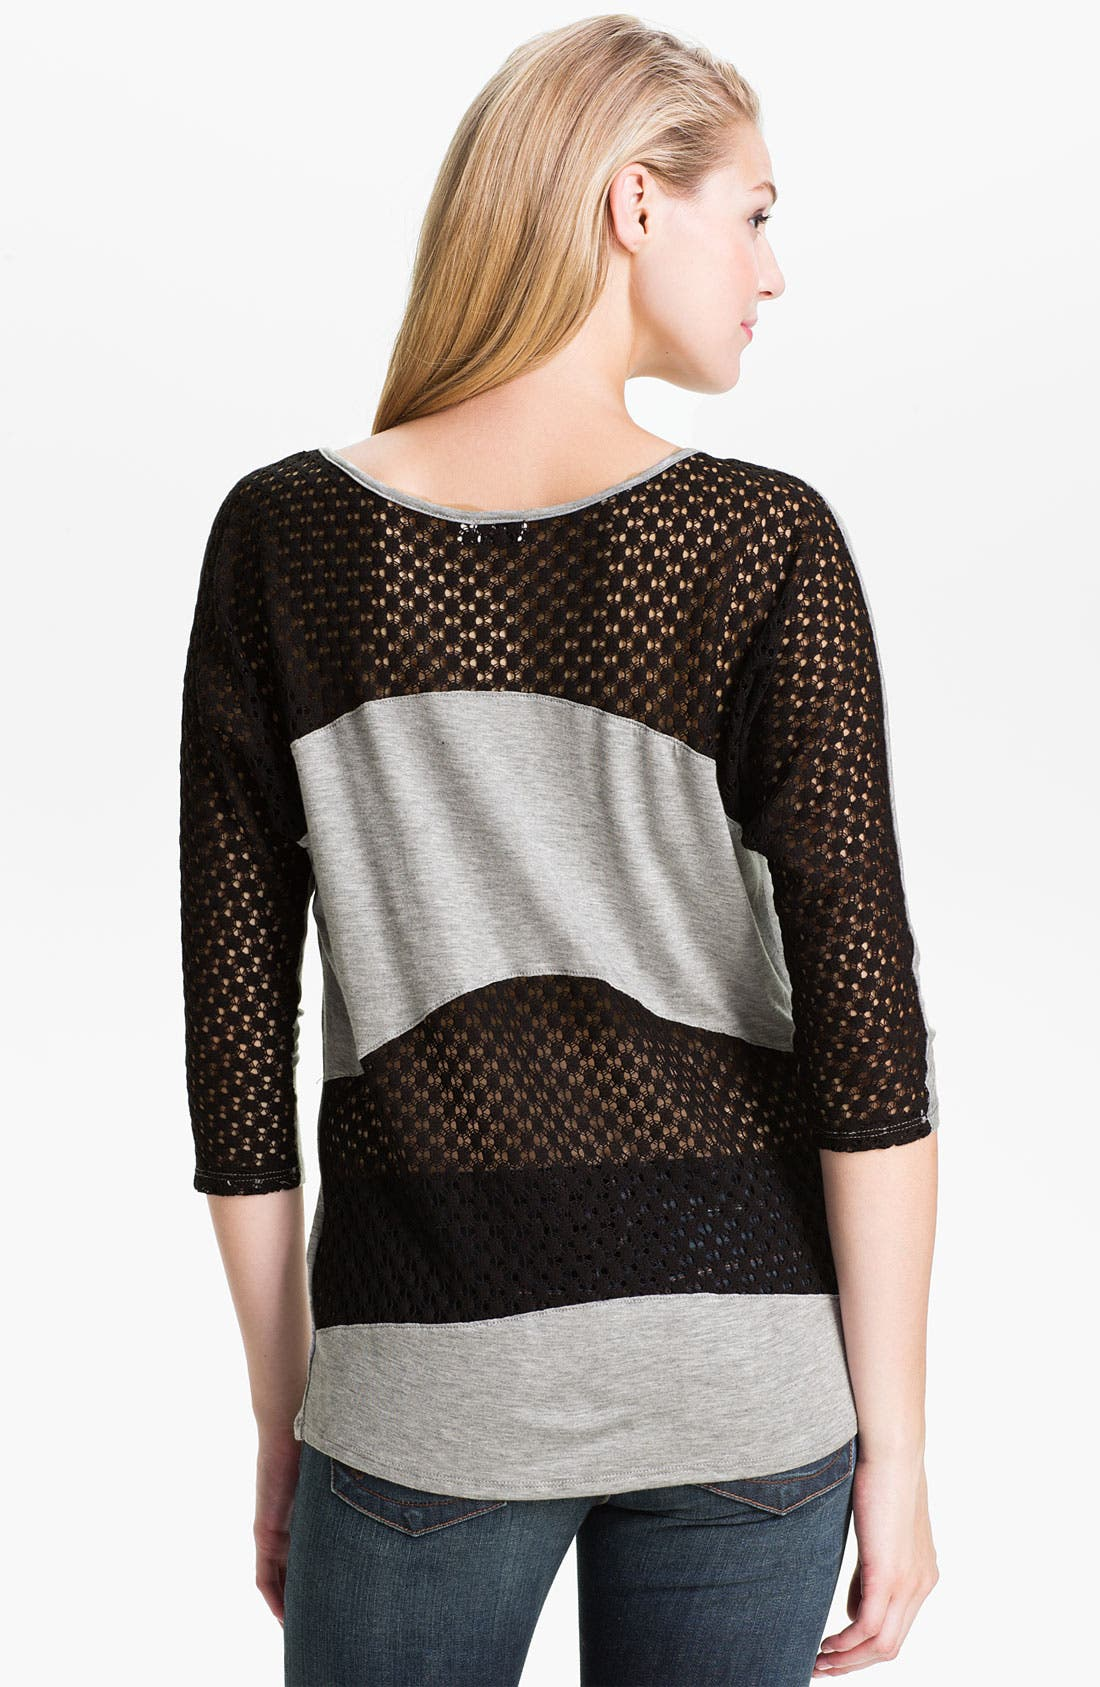 Alternate Image 1 Selected - KUT from the Kloth 'Lisette' Top (Online Exclusive)